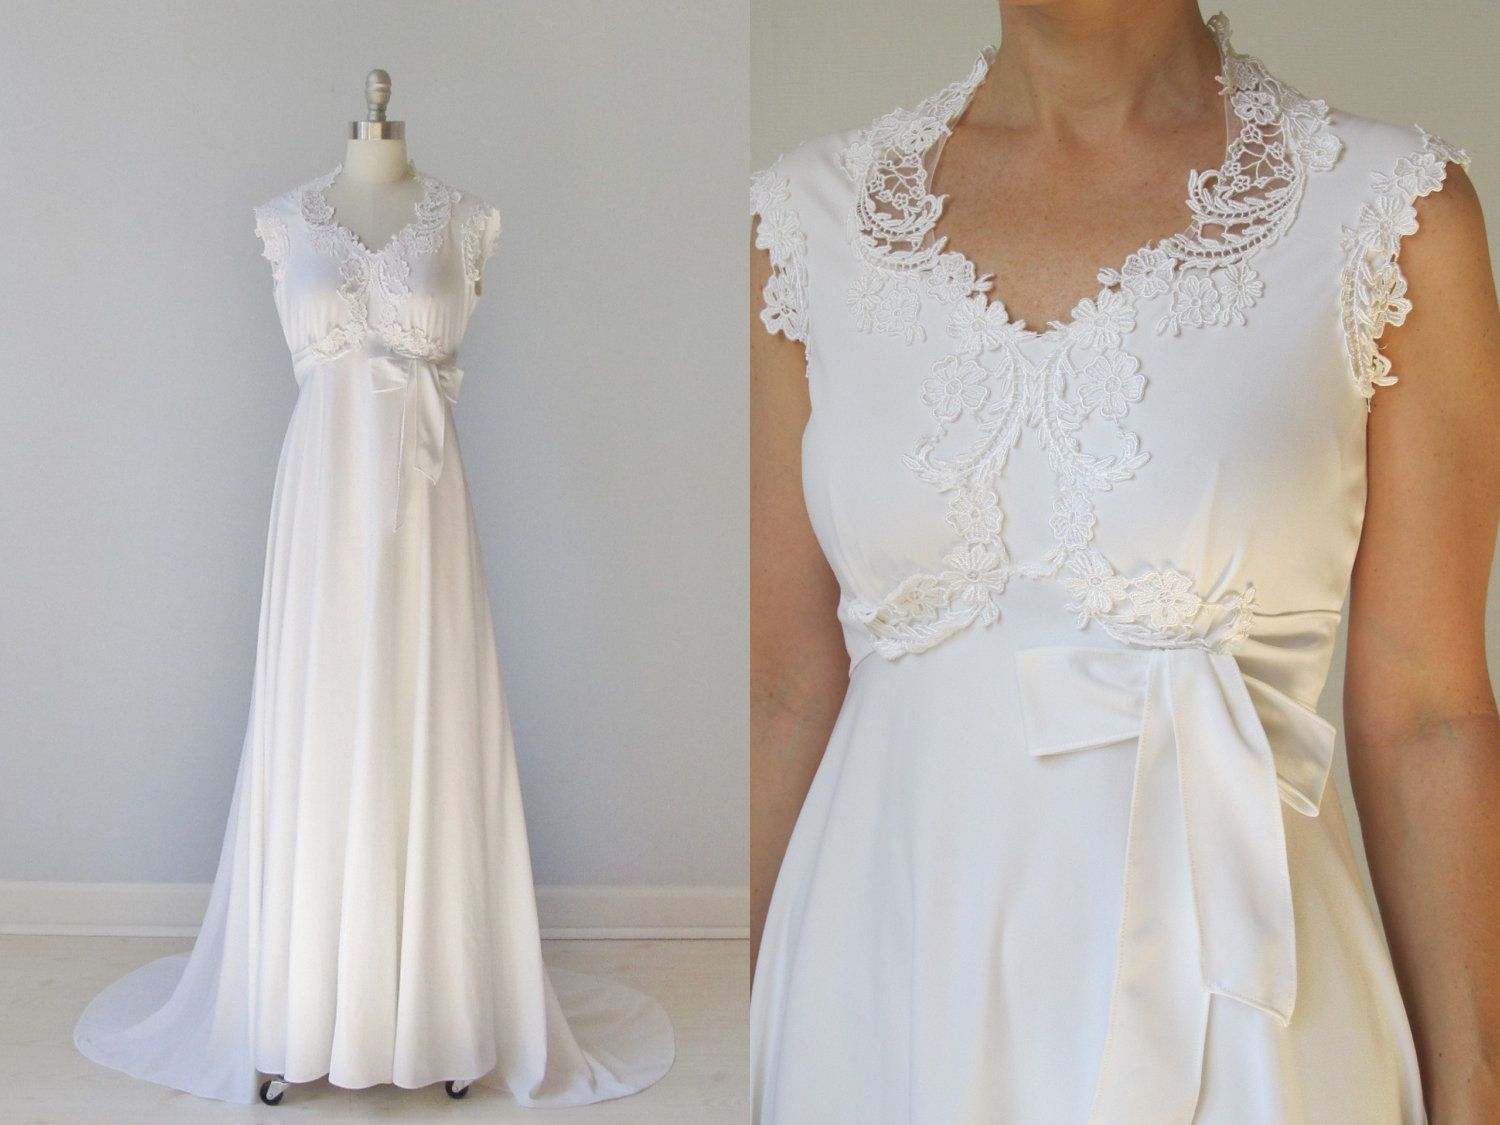 sew your own wedding dress - Google Search | Small Weddings ...